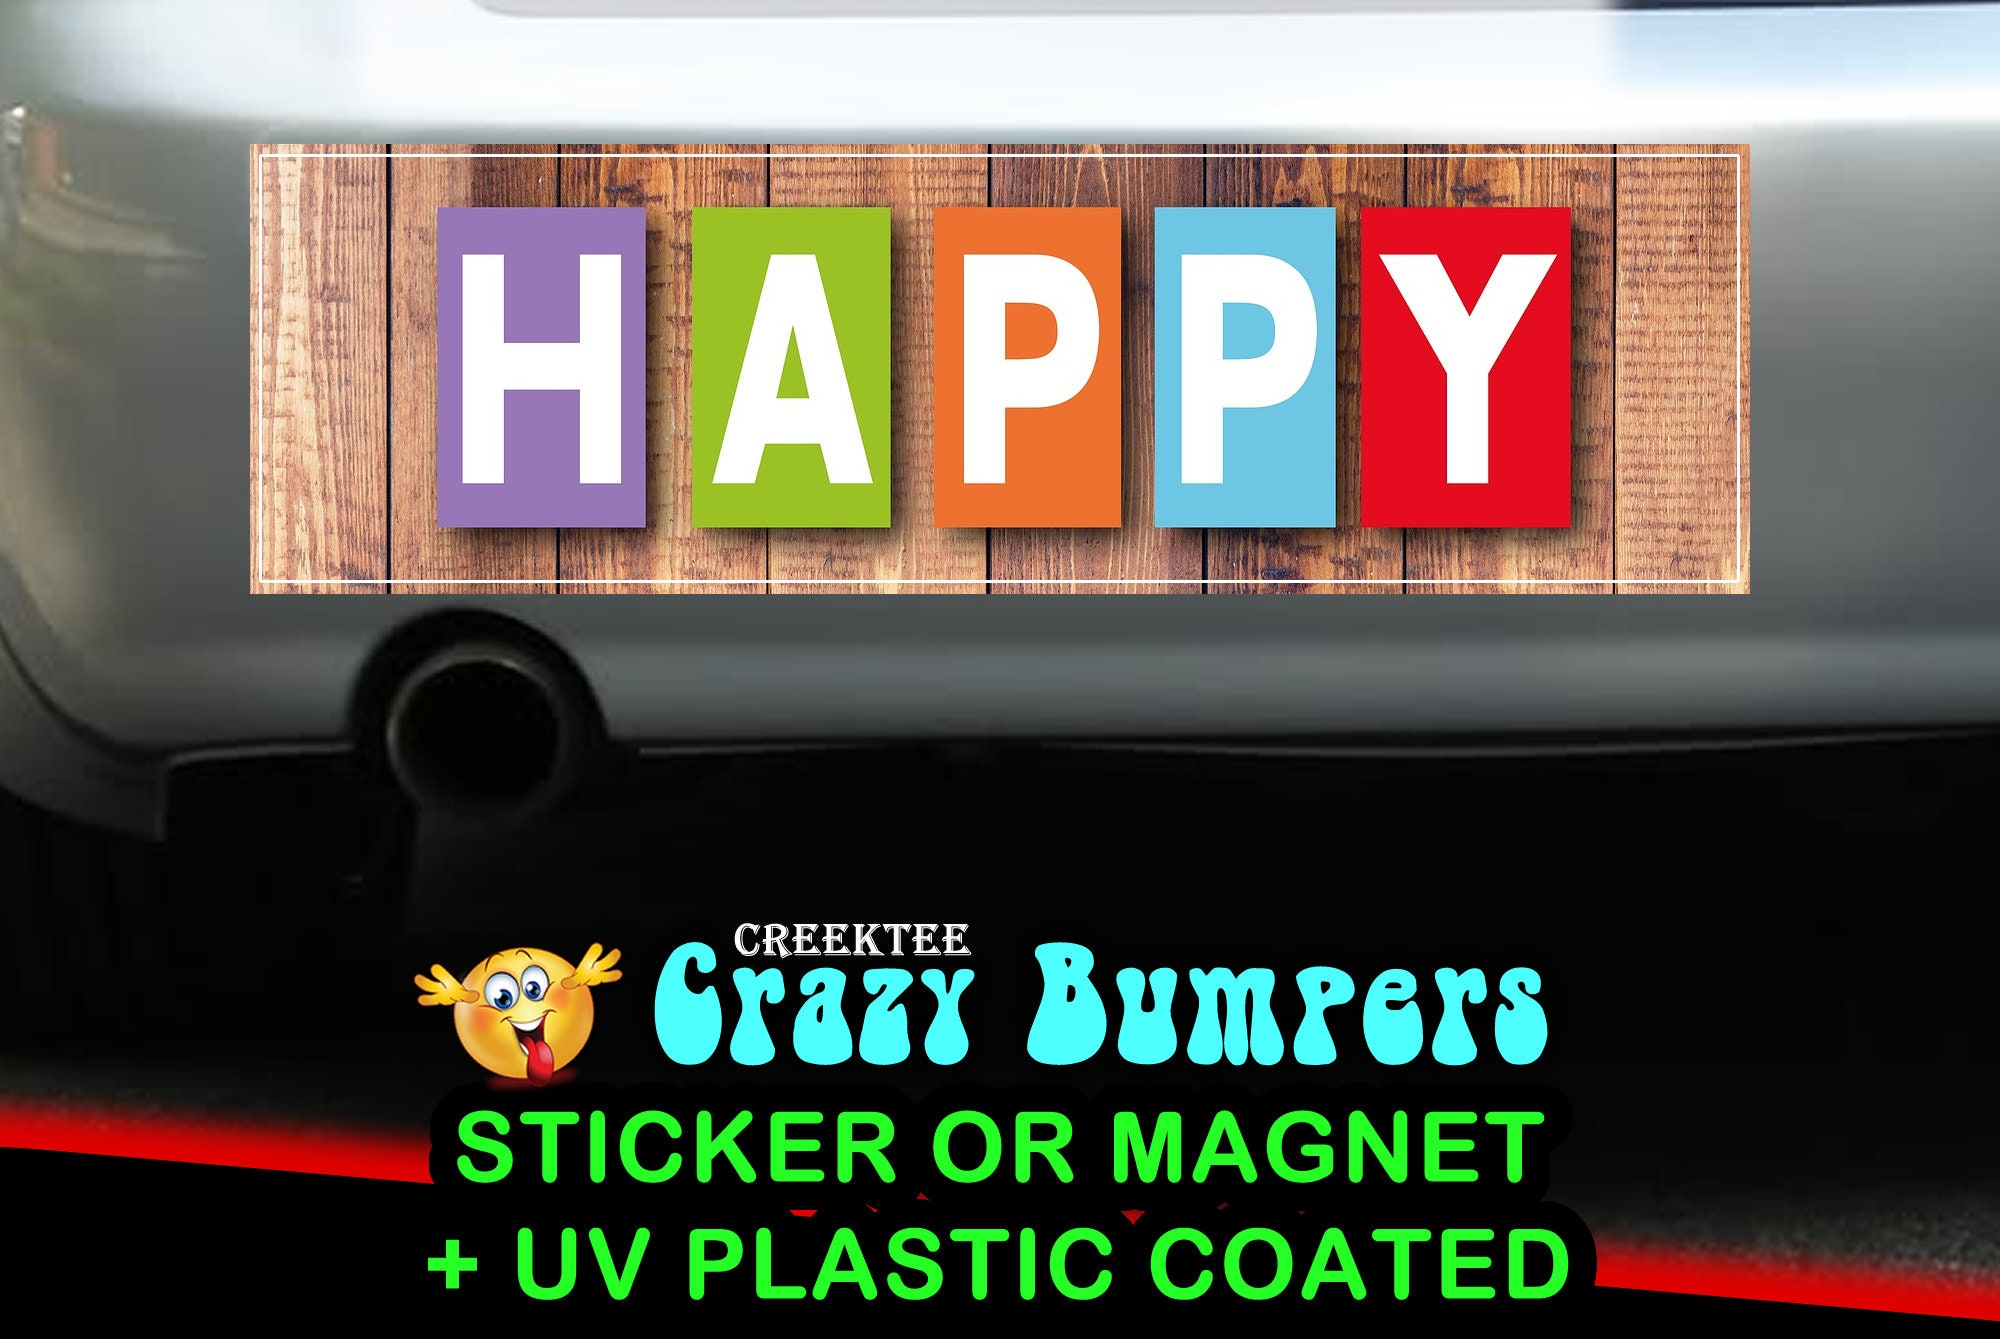 $7.99 - Happy 10 x 3 Bumper Sticker or Magnetic Bumper Sticker Available